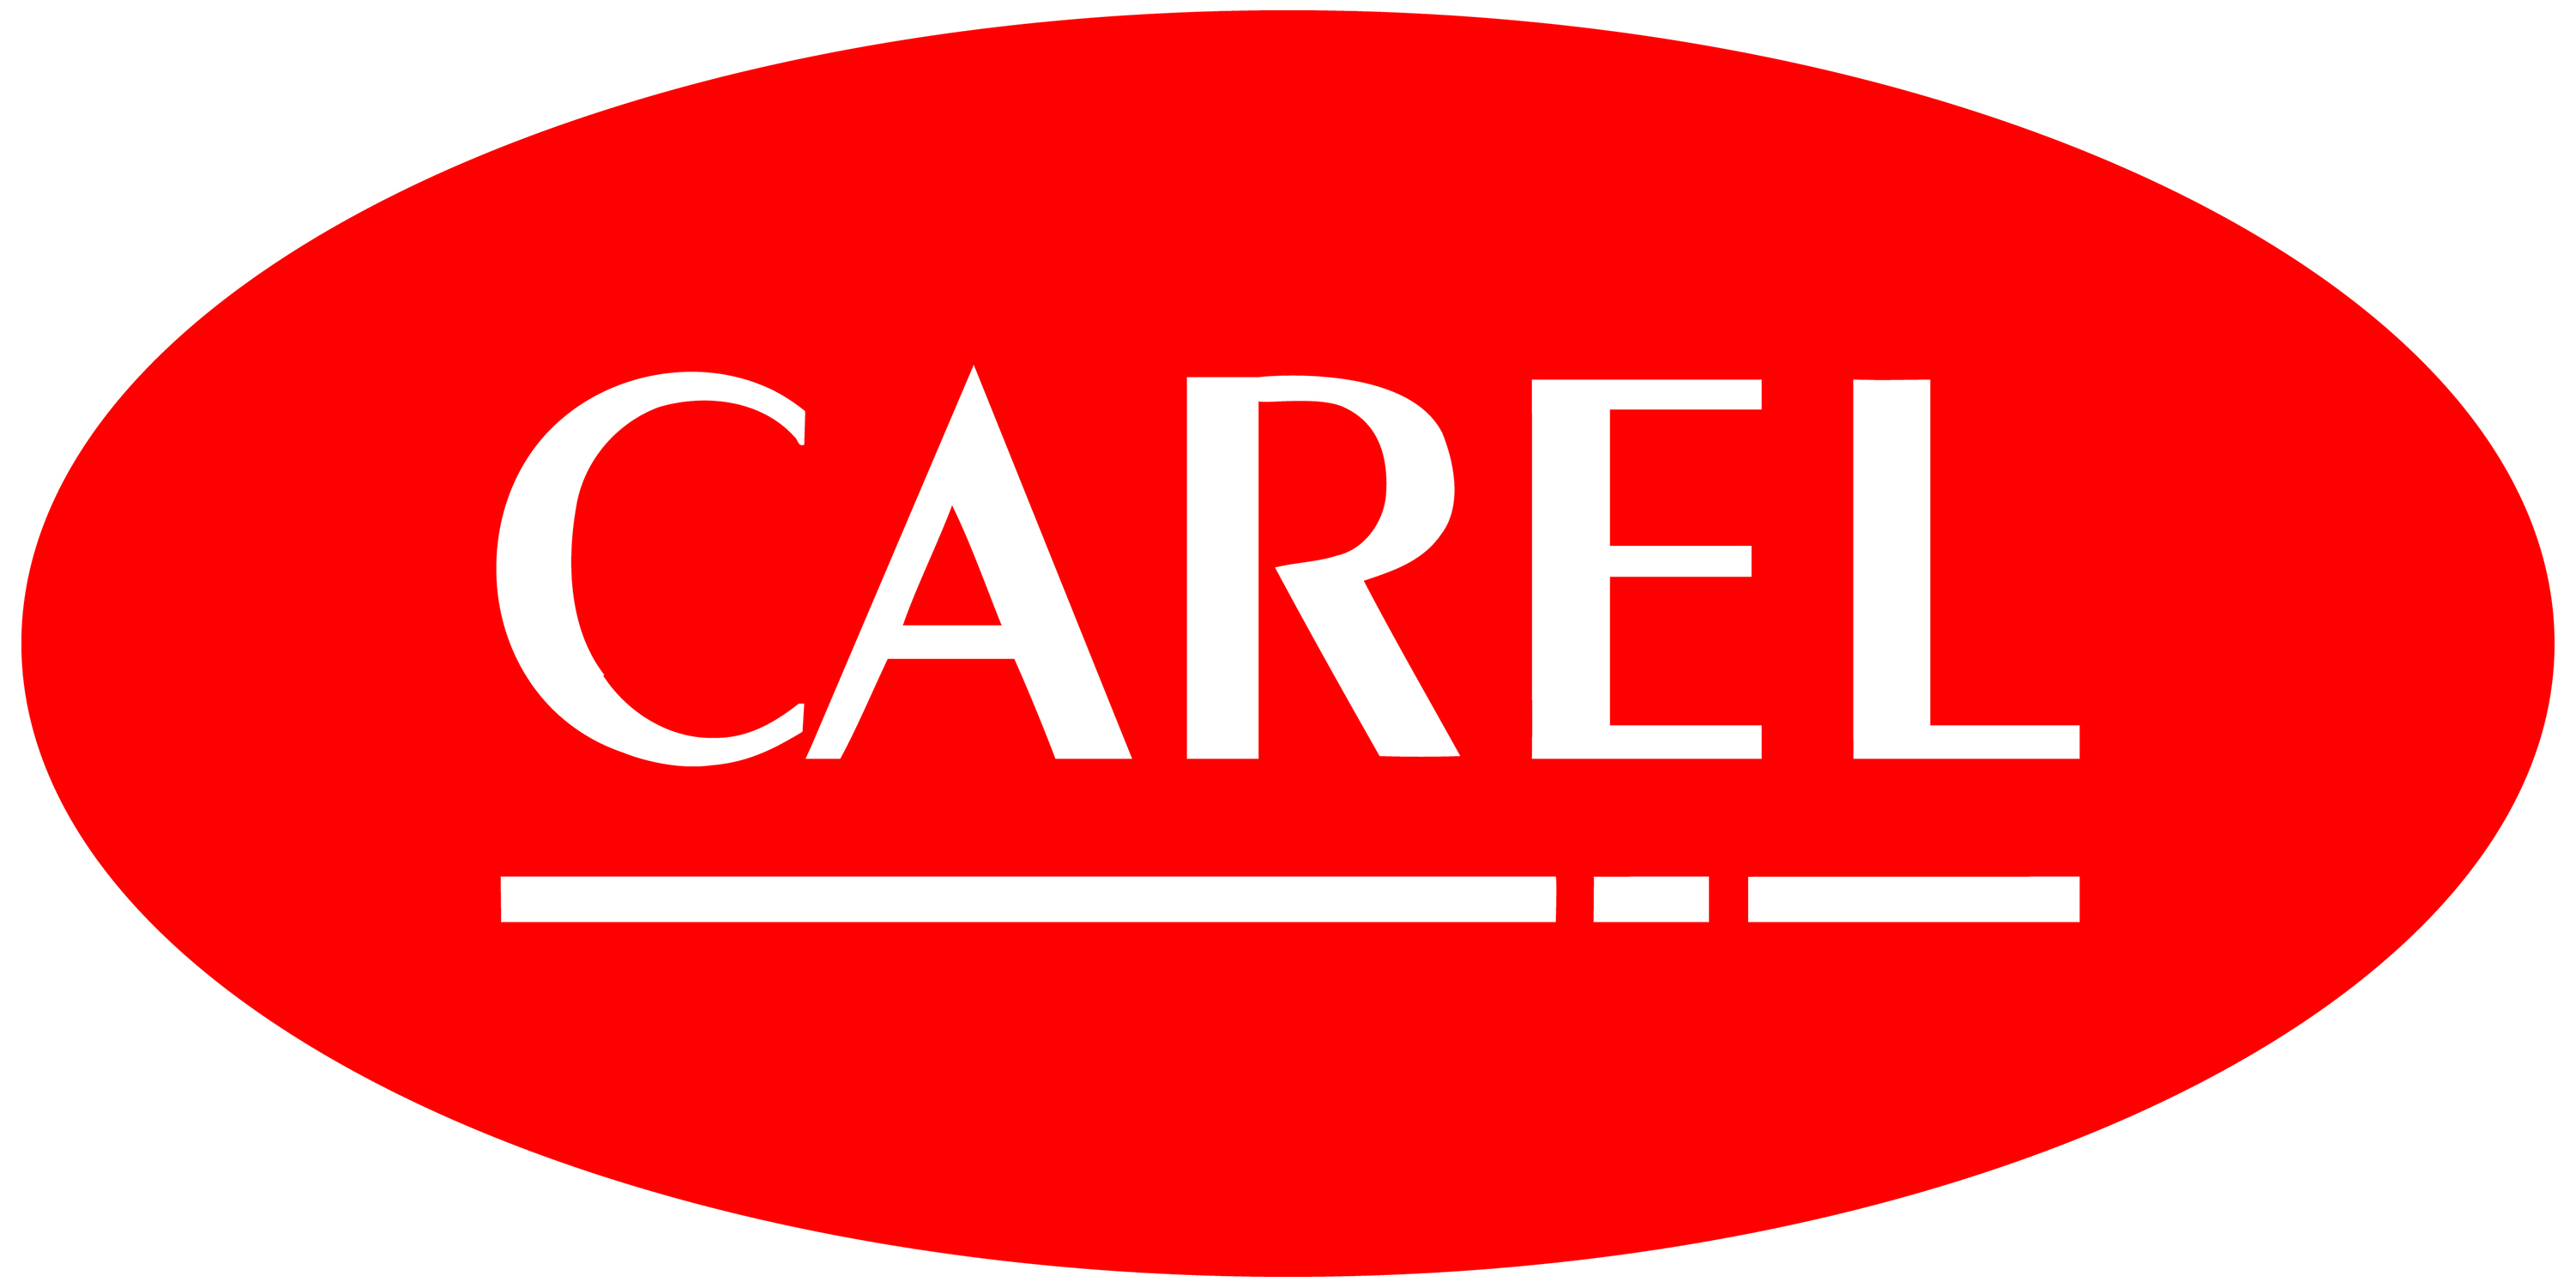 CAREL - CAREL Russia Llc